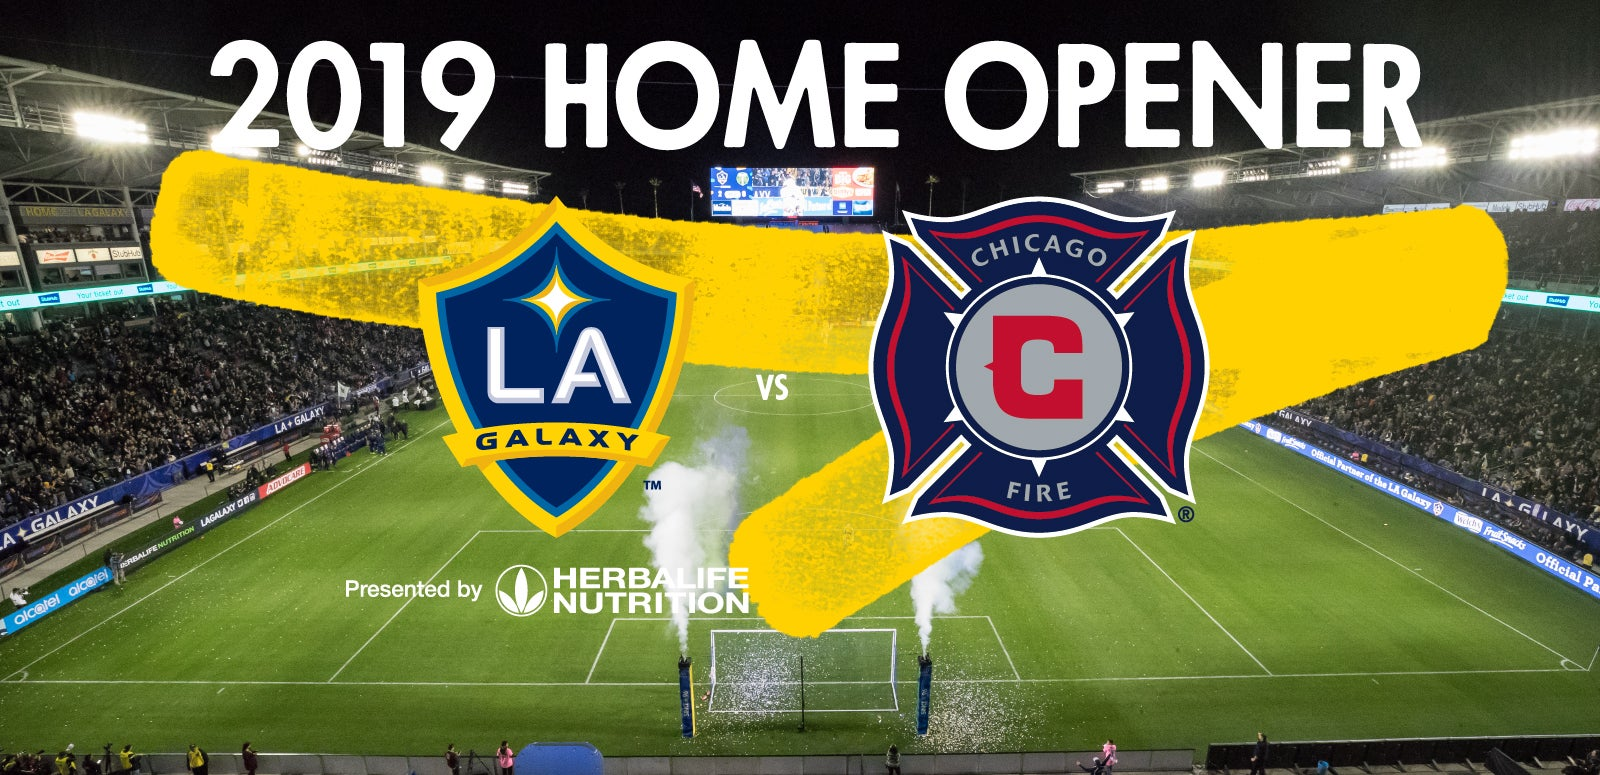 LA Galaxy vs. Chicago Fire